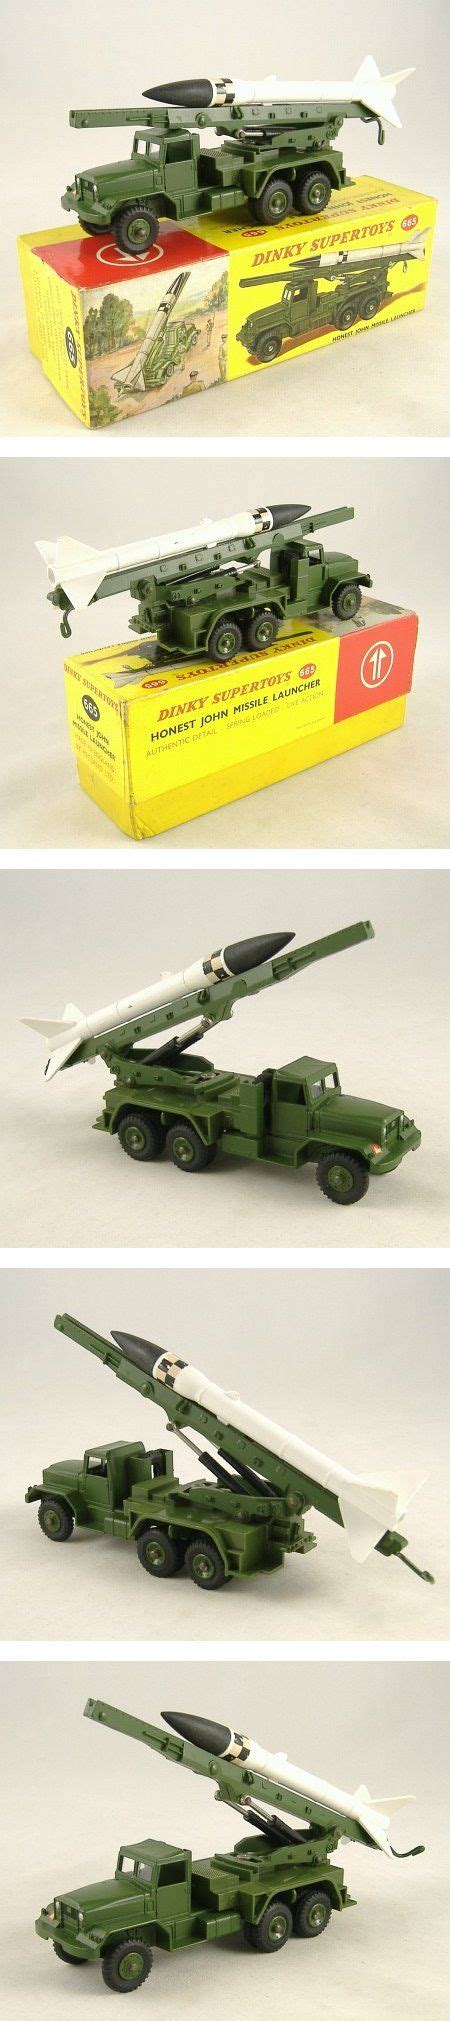 A7 0896 Mainan Diecast Wheels Matchbox Second 35 best images about plastic soldiers toys on boy toys toys and soldiers